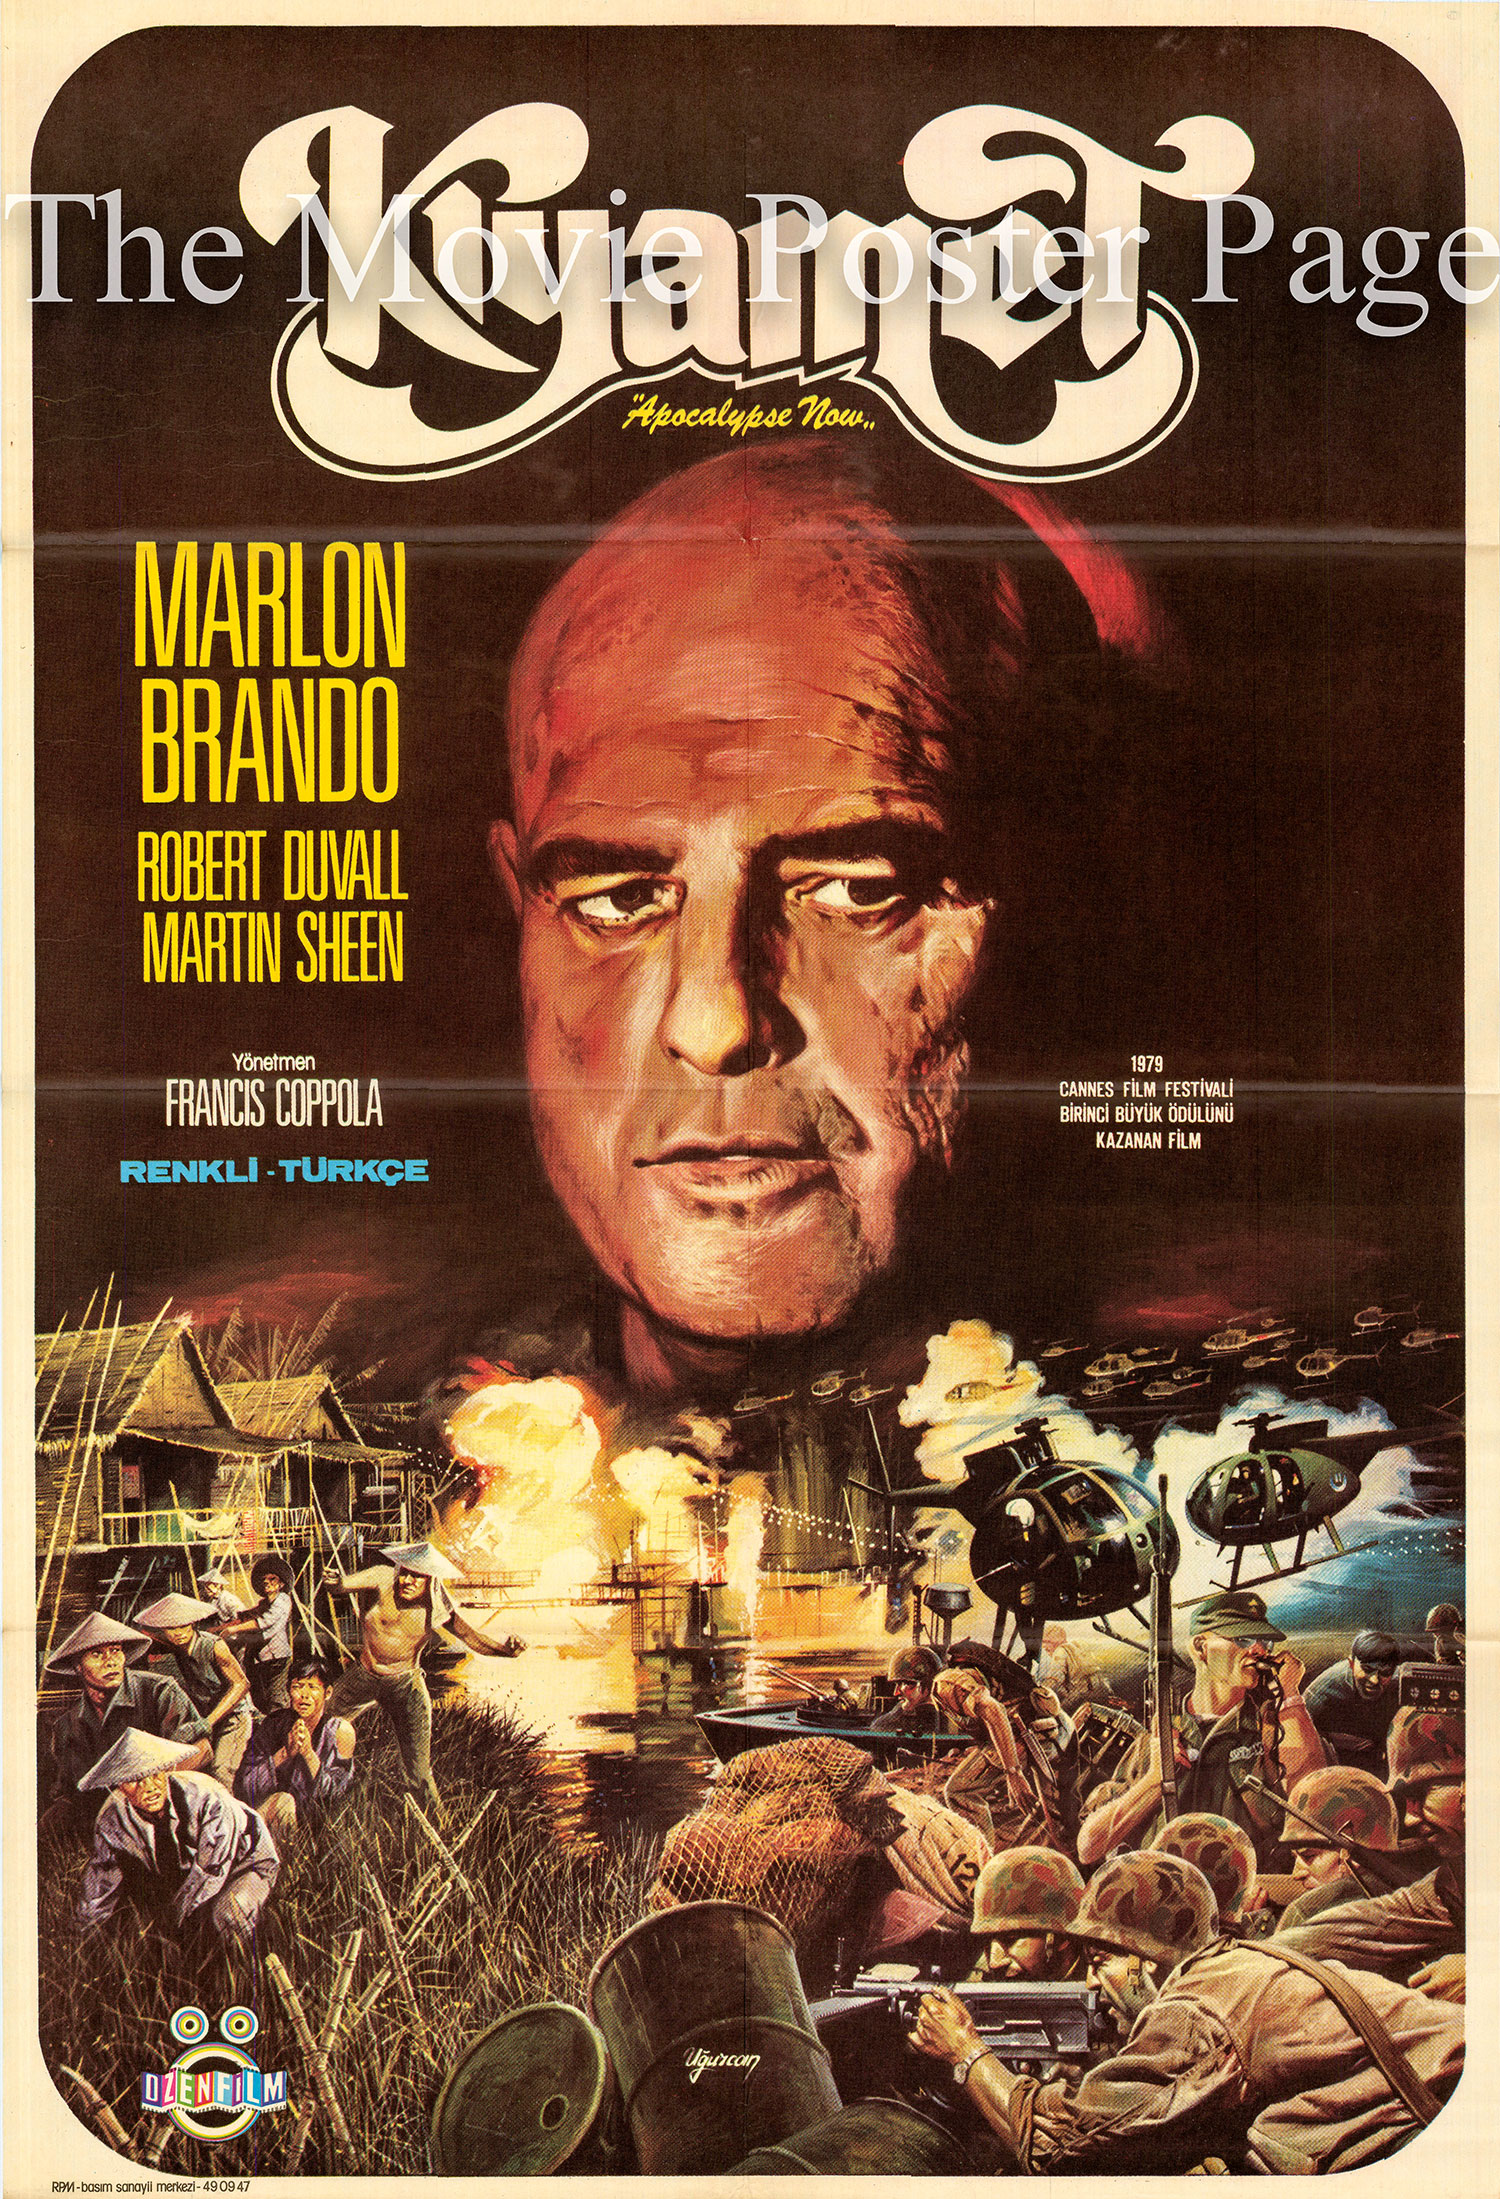 Pictured is a Turkish promotional poster for the 1979 Francis Ford Coppola film Apocalypse Now starring Marlon Brando.